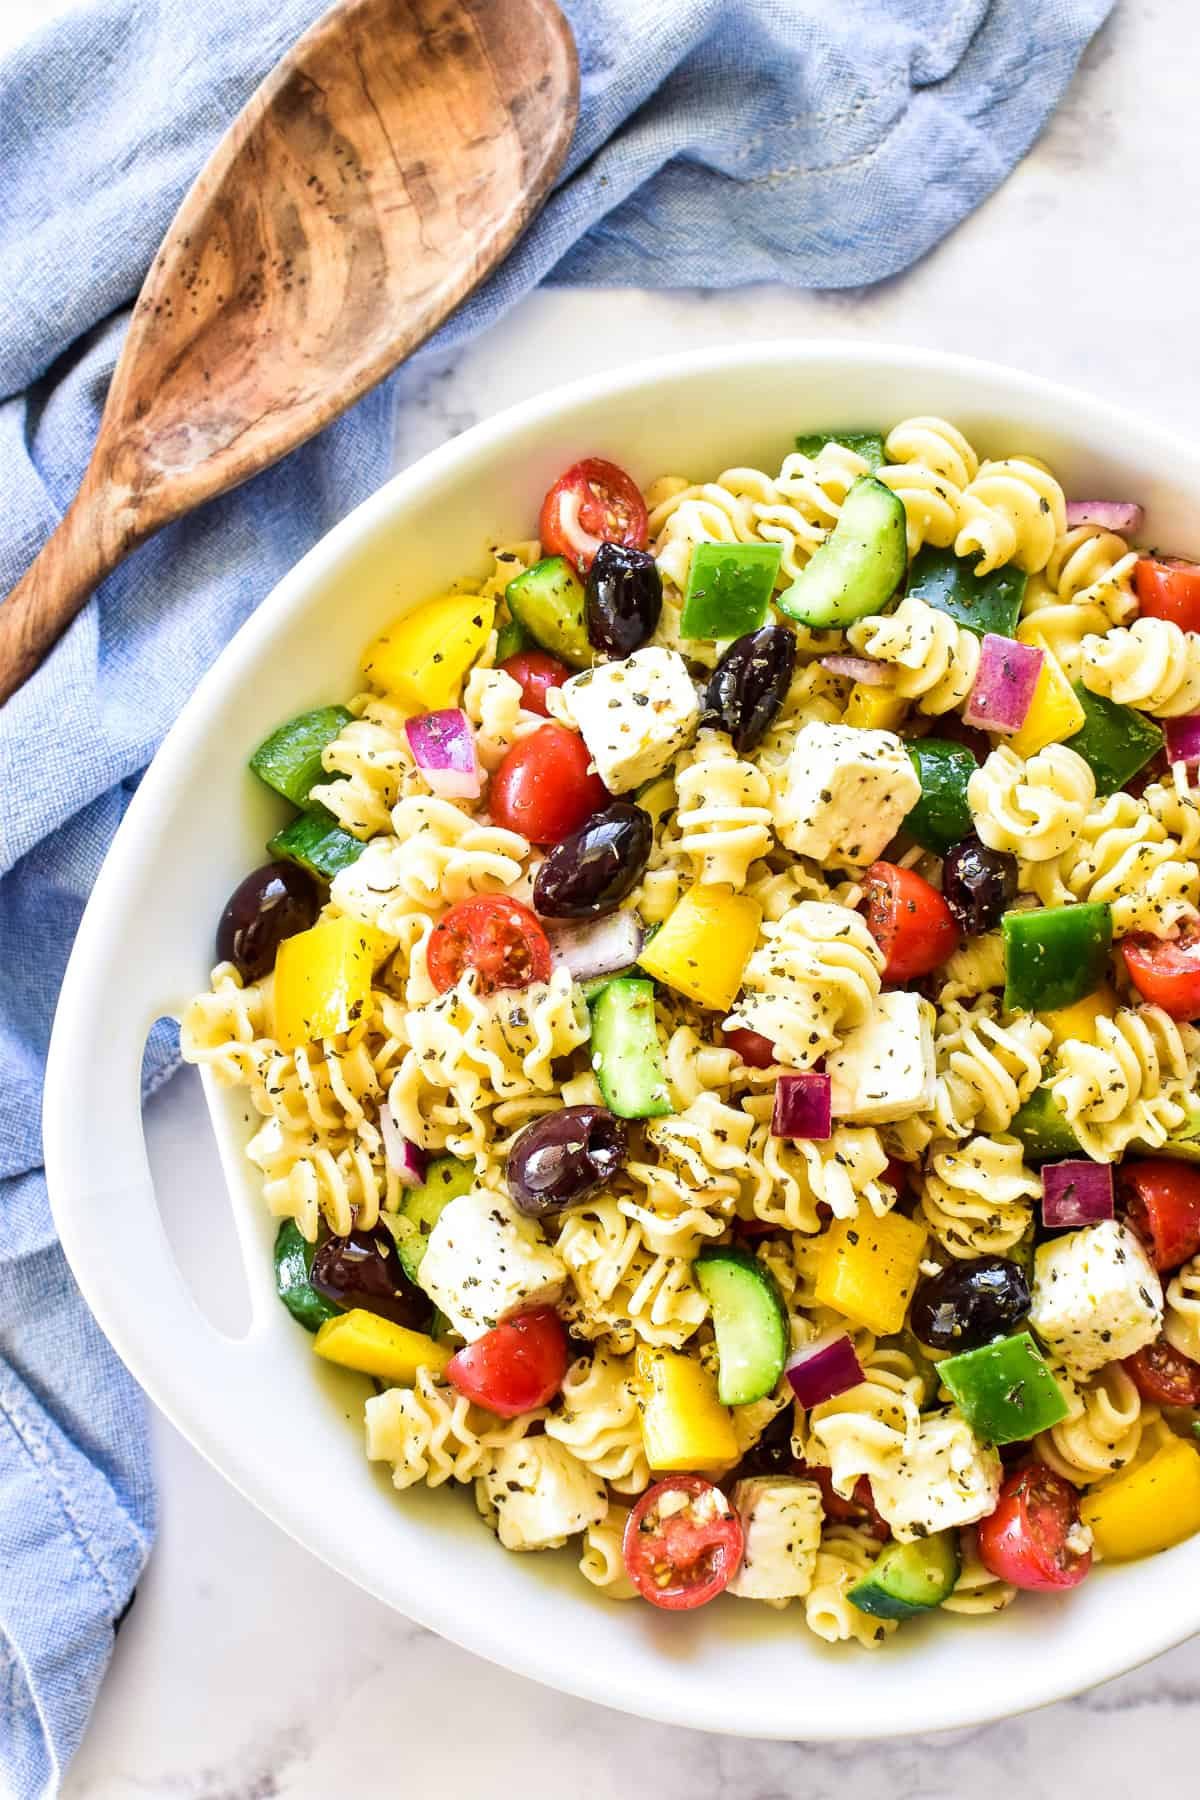 Overhead shot of Greek Pasta Salad in white serving bowl with wooden spoon